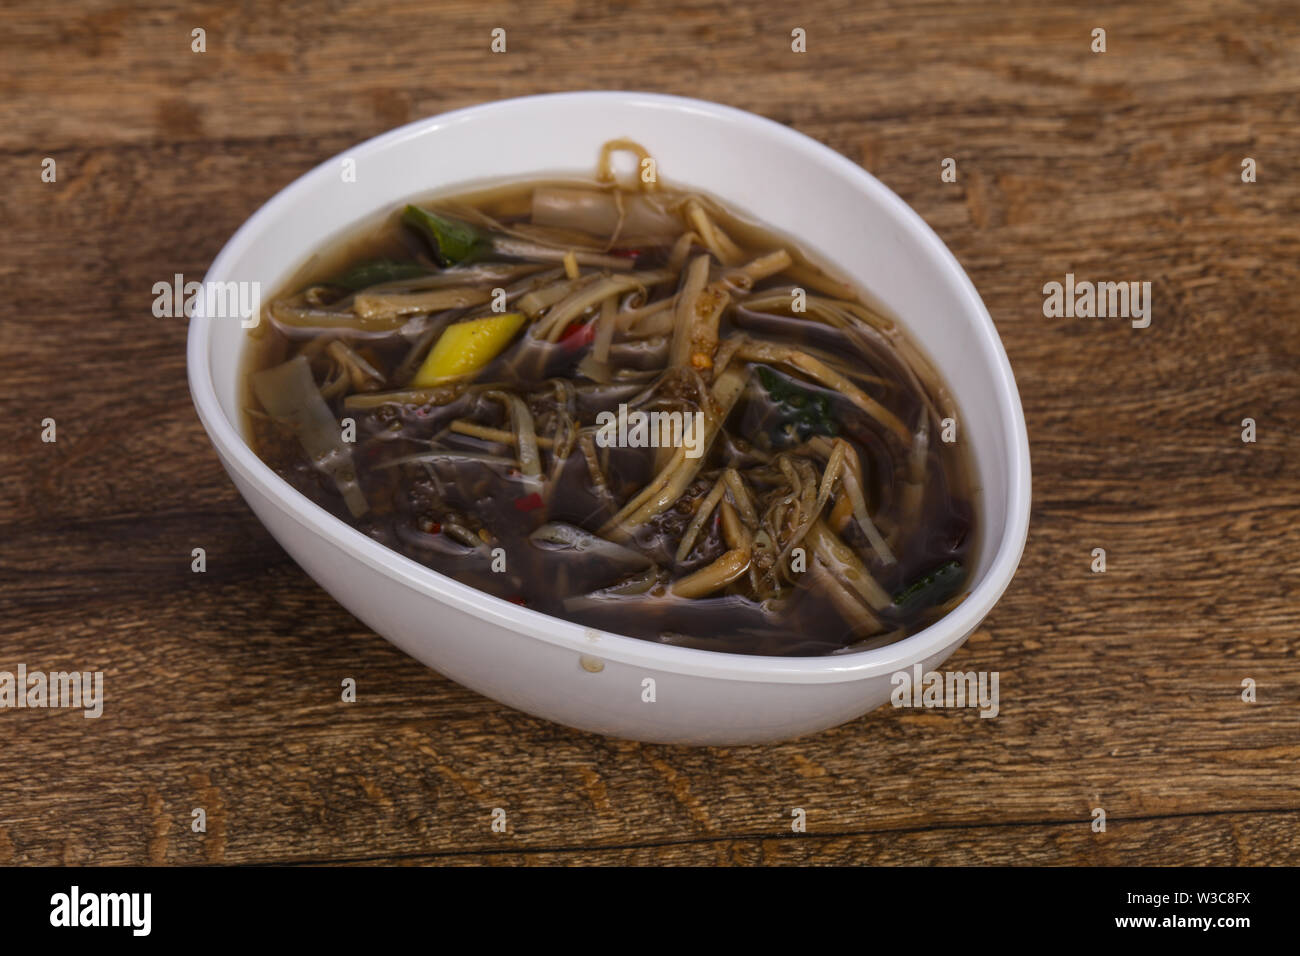 Thai style soup with meat, vegetables and mushrooms - Stock Image